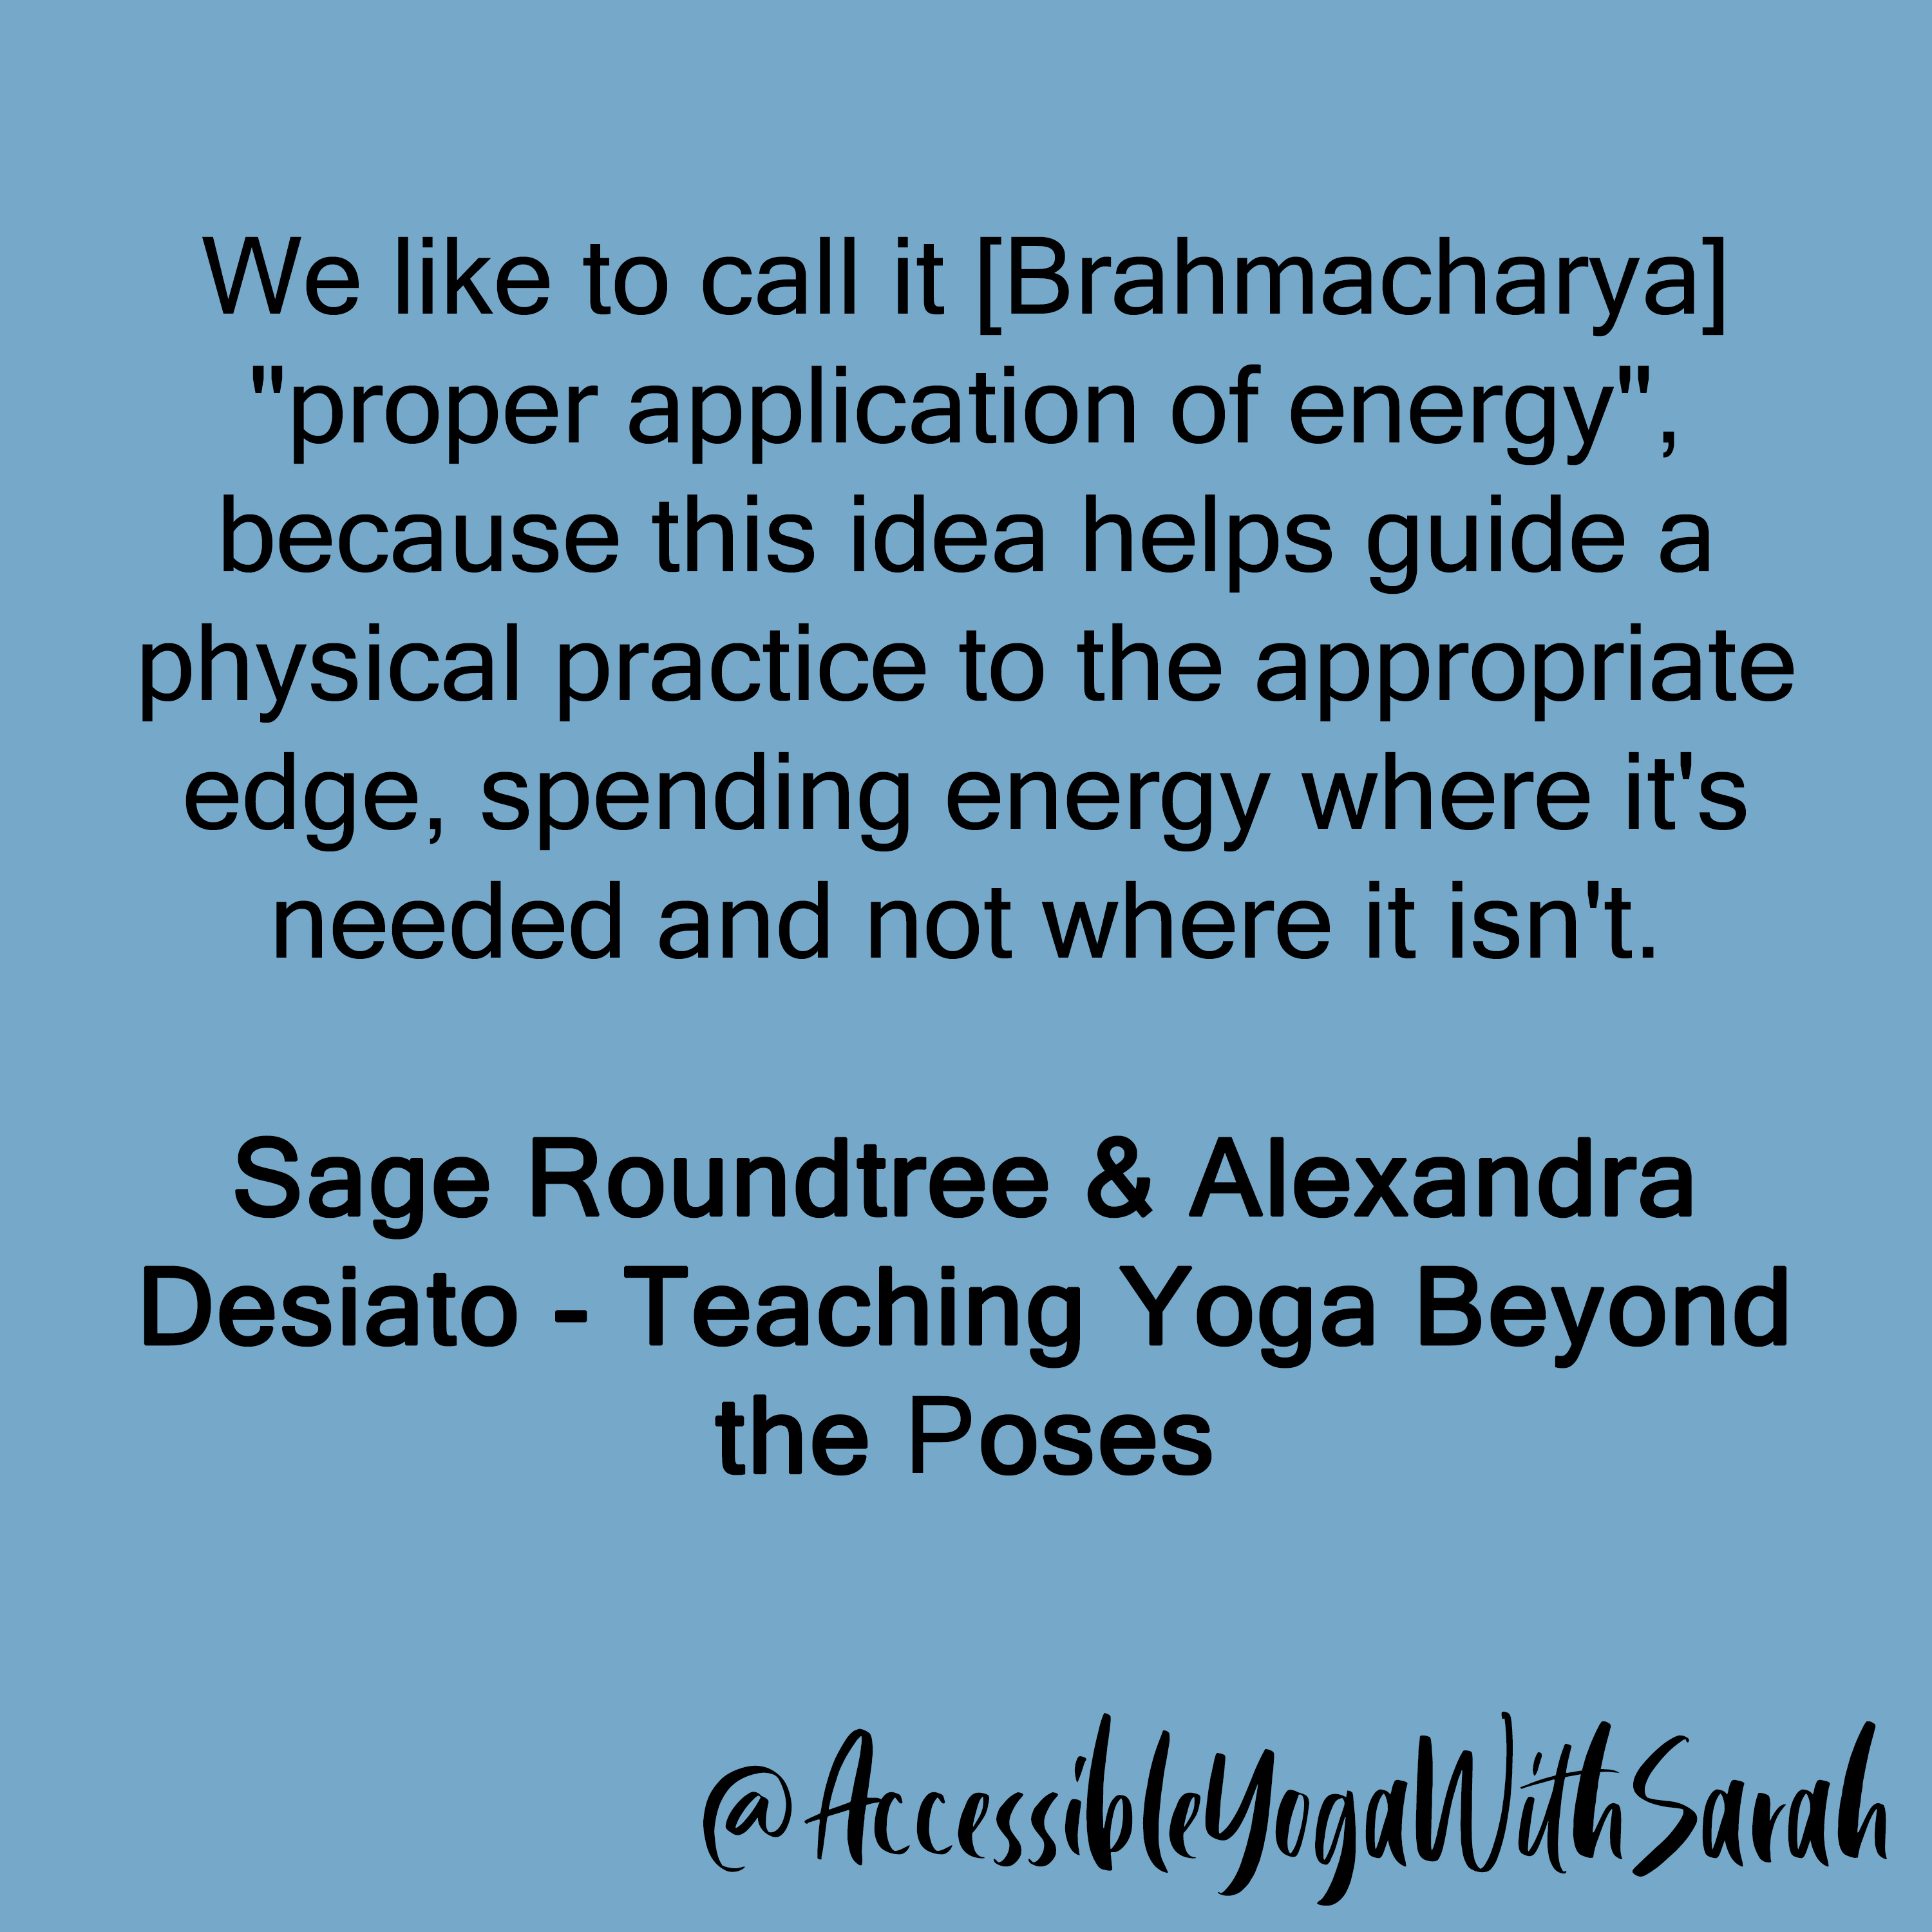 Brahmacharya Proper Application Of Energy Accessible Yoga With Sarah